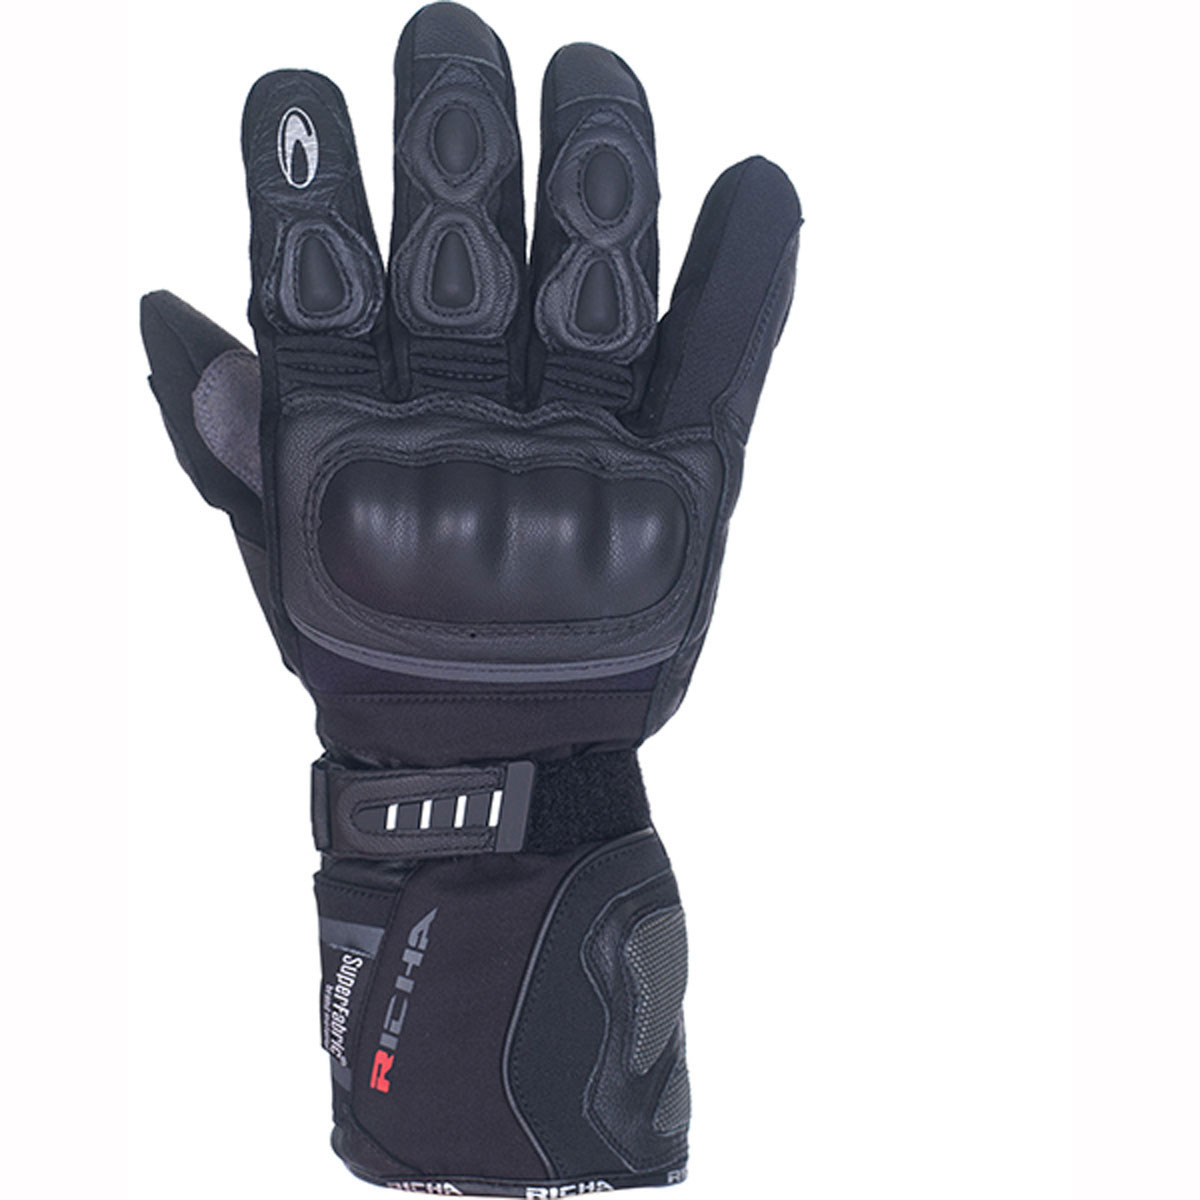 Motorcycle gloves nyc - Union Garage Nyc Seven Ways To Give Winter The Finger